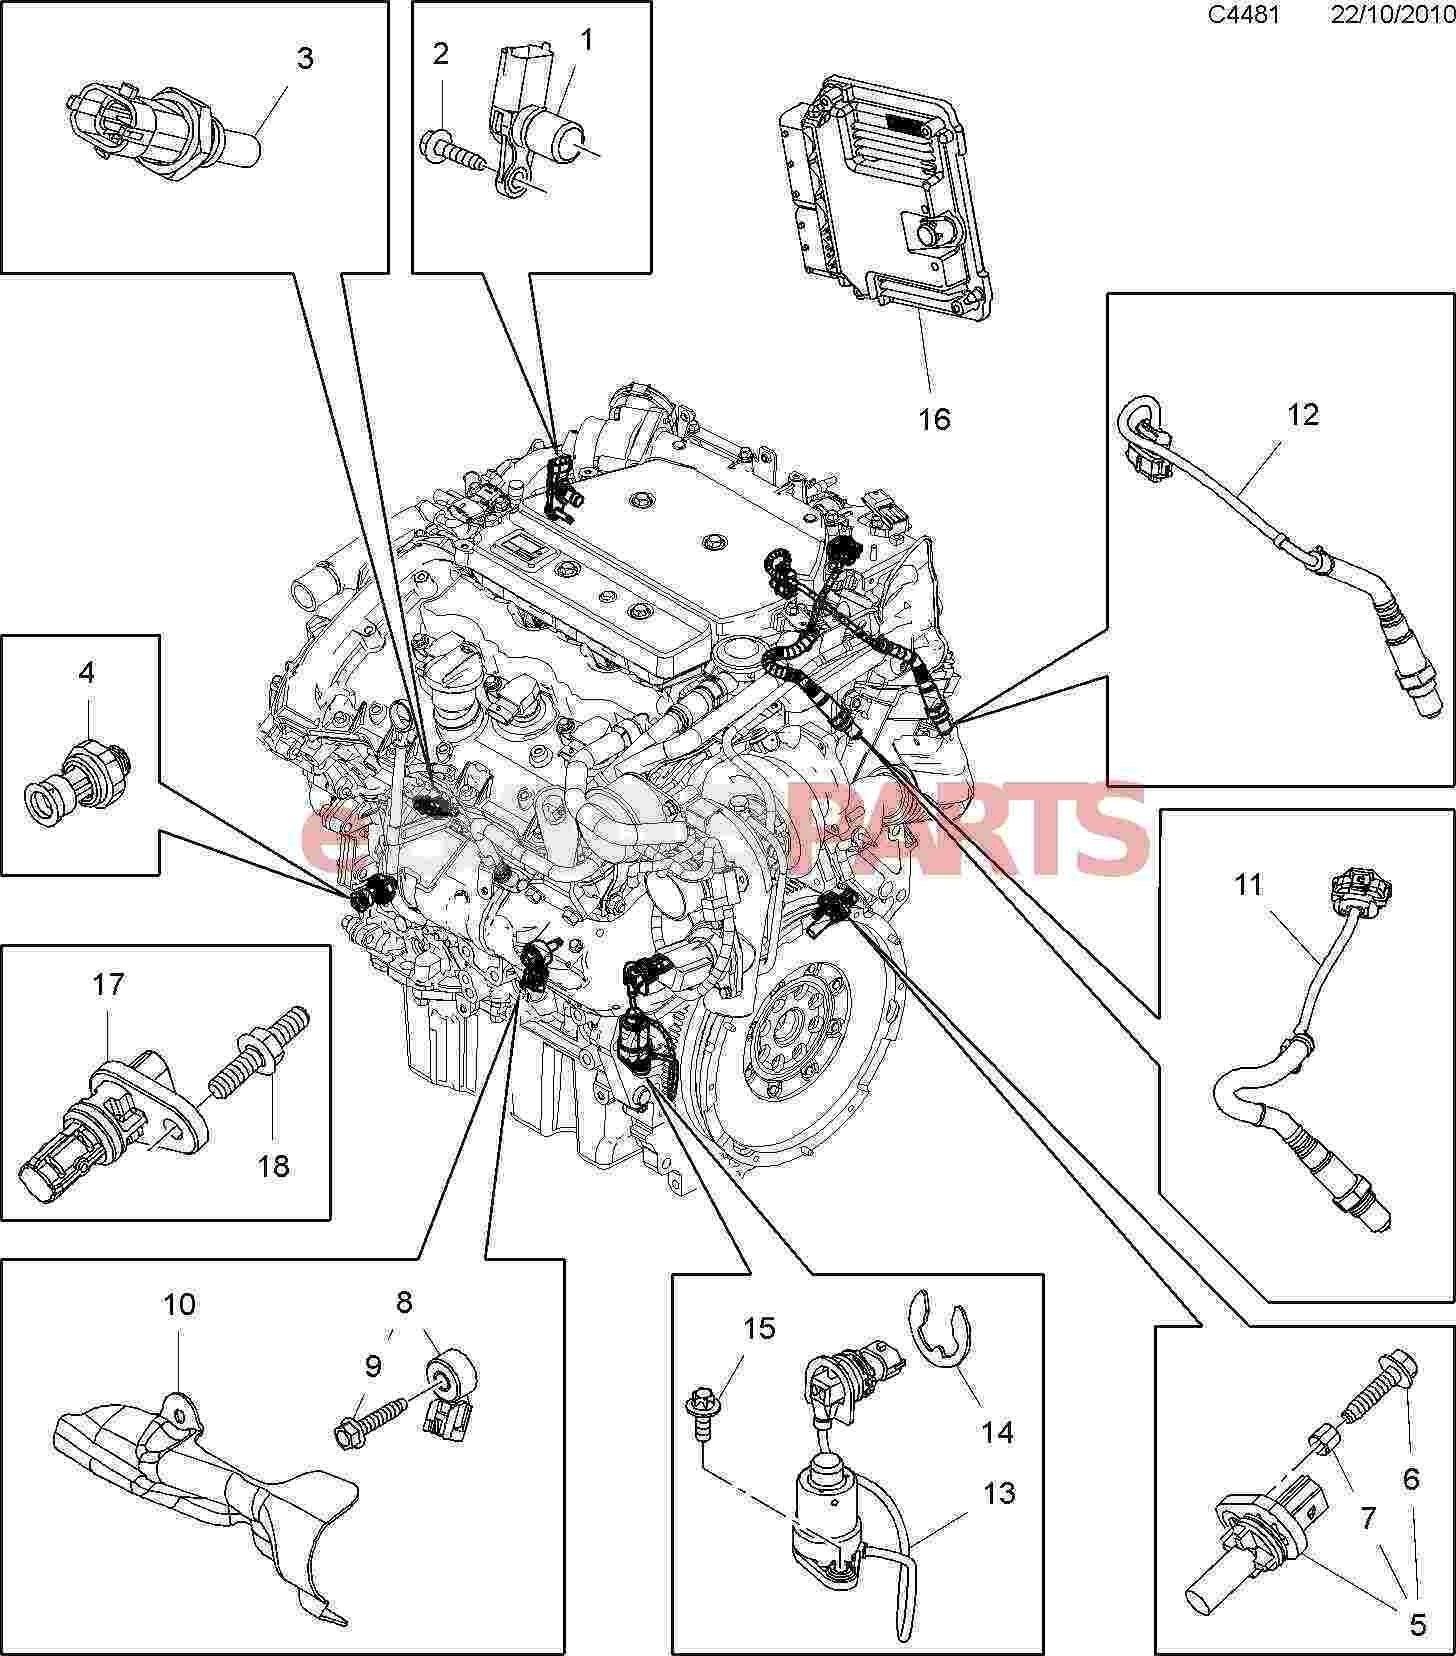 [CSDW_4250]   VZ_1753] Saab 2000 9 3 Engine Diagram Get Free Image About Wiring Diagram  Wiring Diagram | 2004 Saab Engine Diagram |  | Weveq Xaem Mohammedshrine Librar Wiring 101